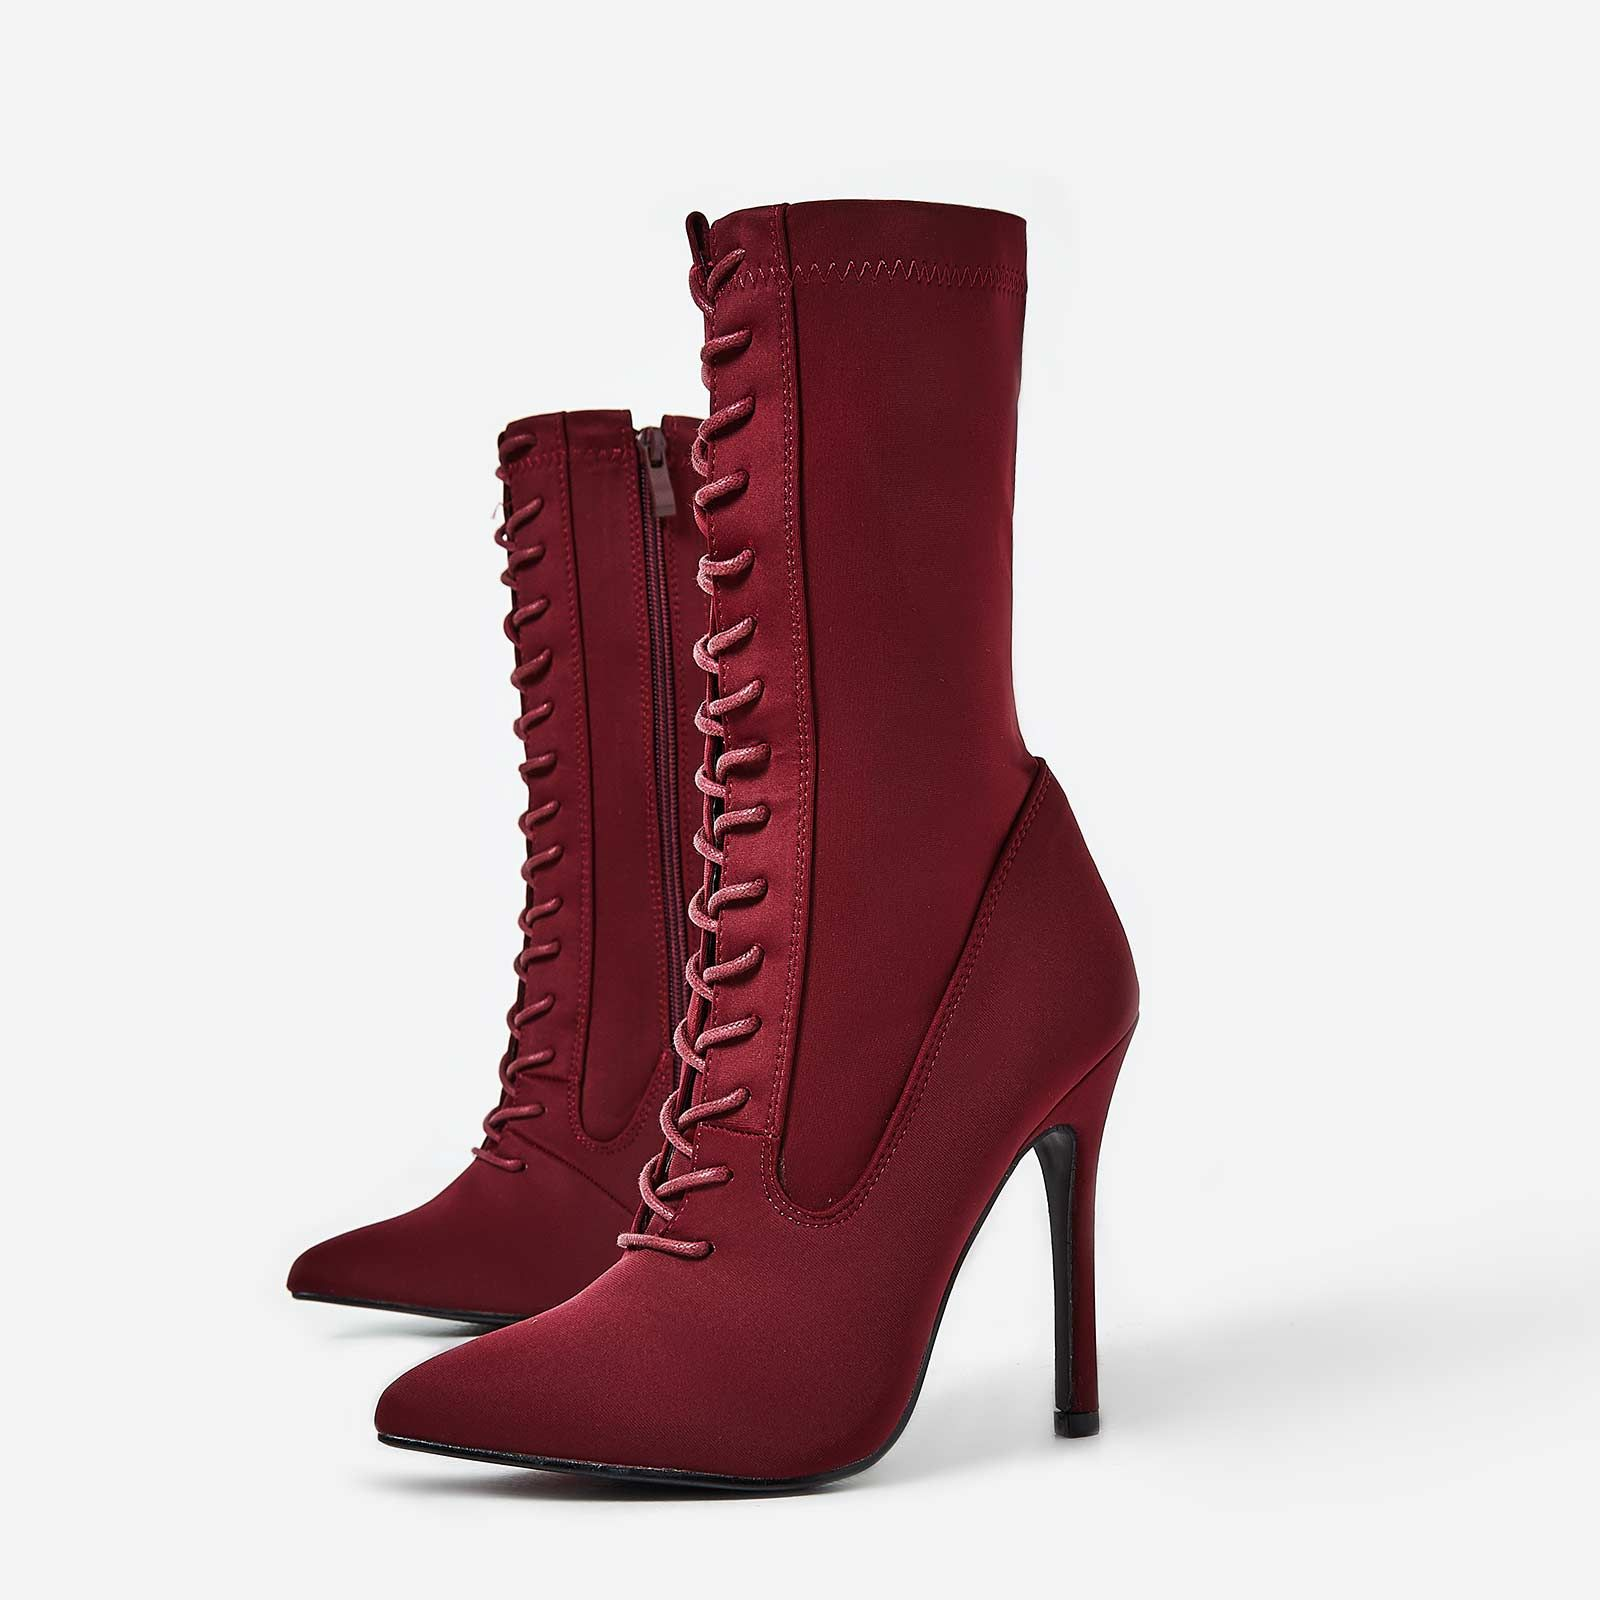 EGO BURGUNDY LACE UP BOOTS